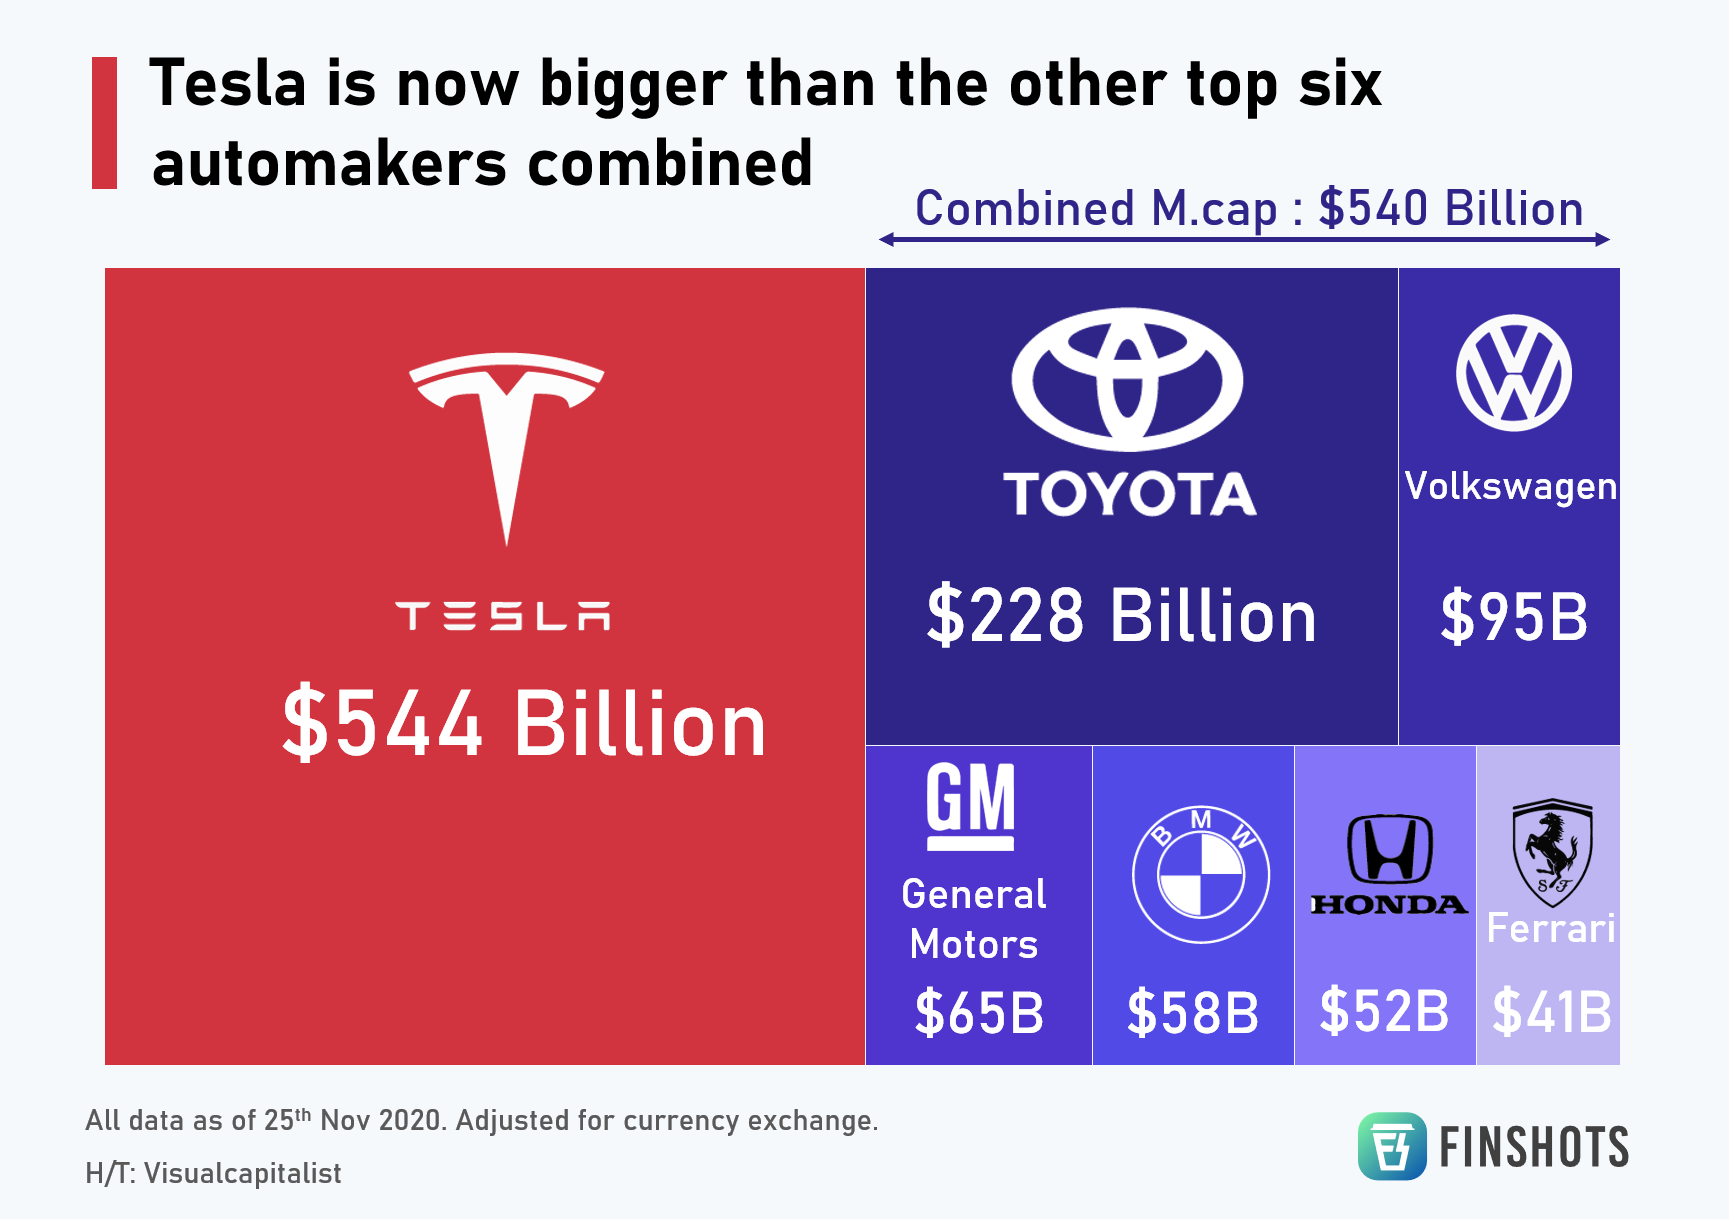 Tesla is now bigger than the other top six automakers combined